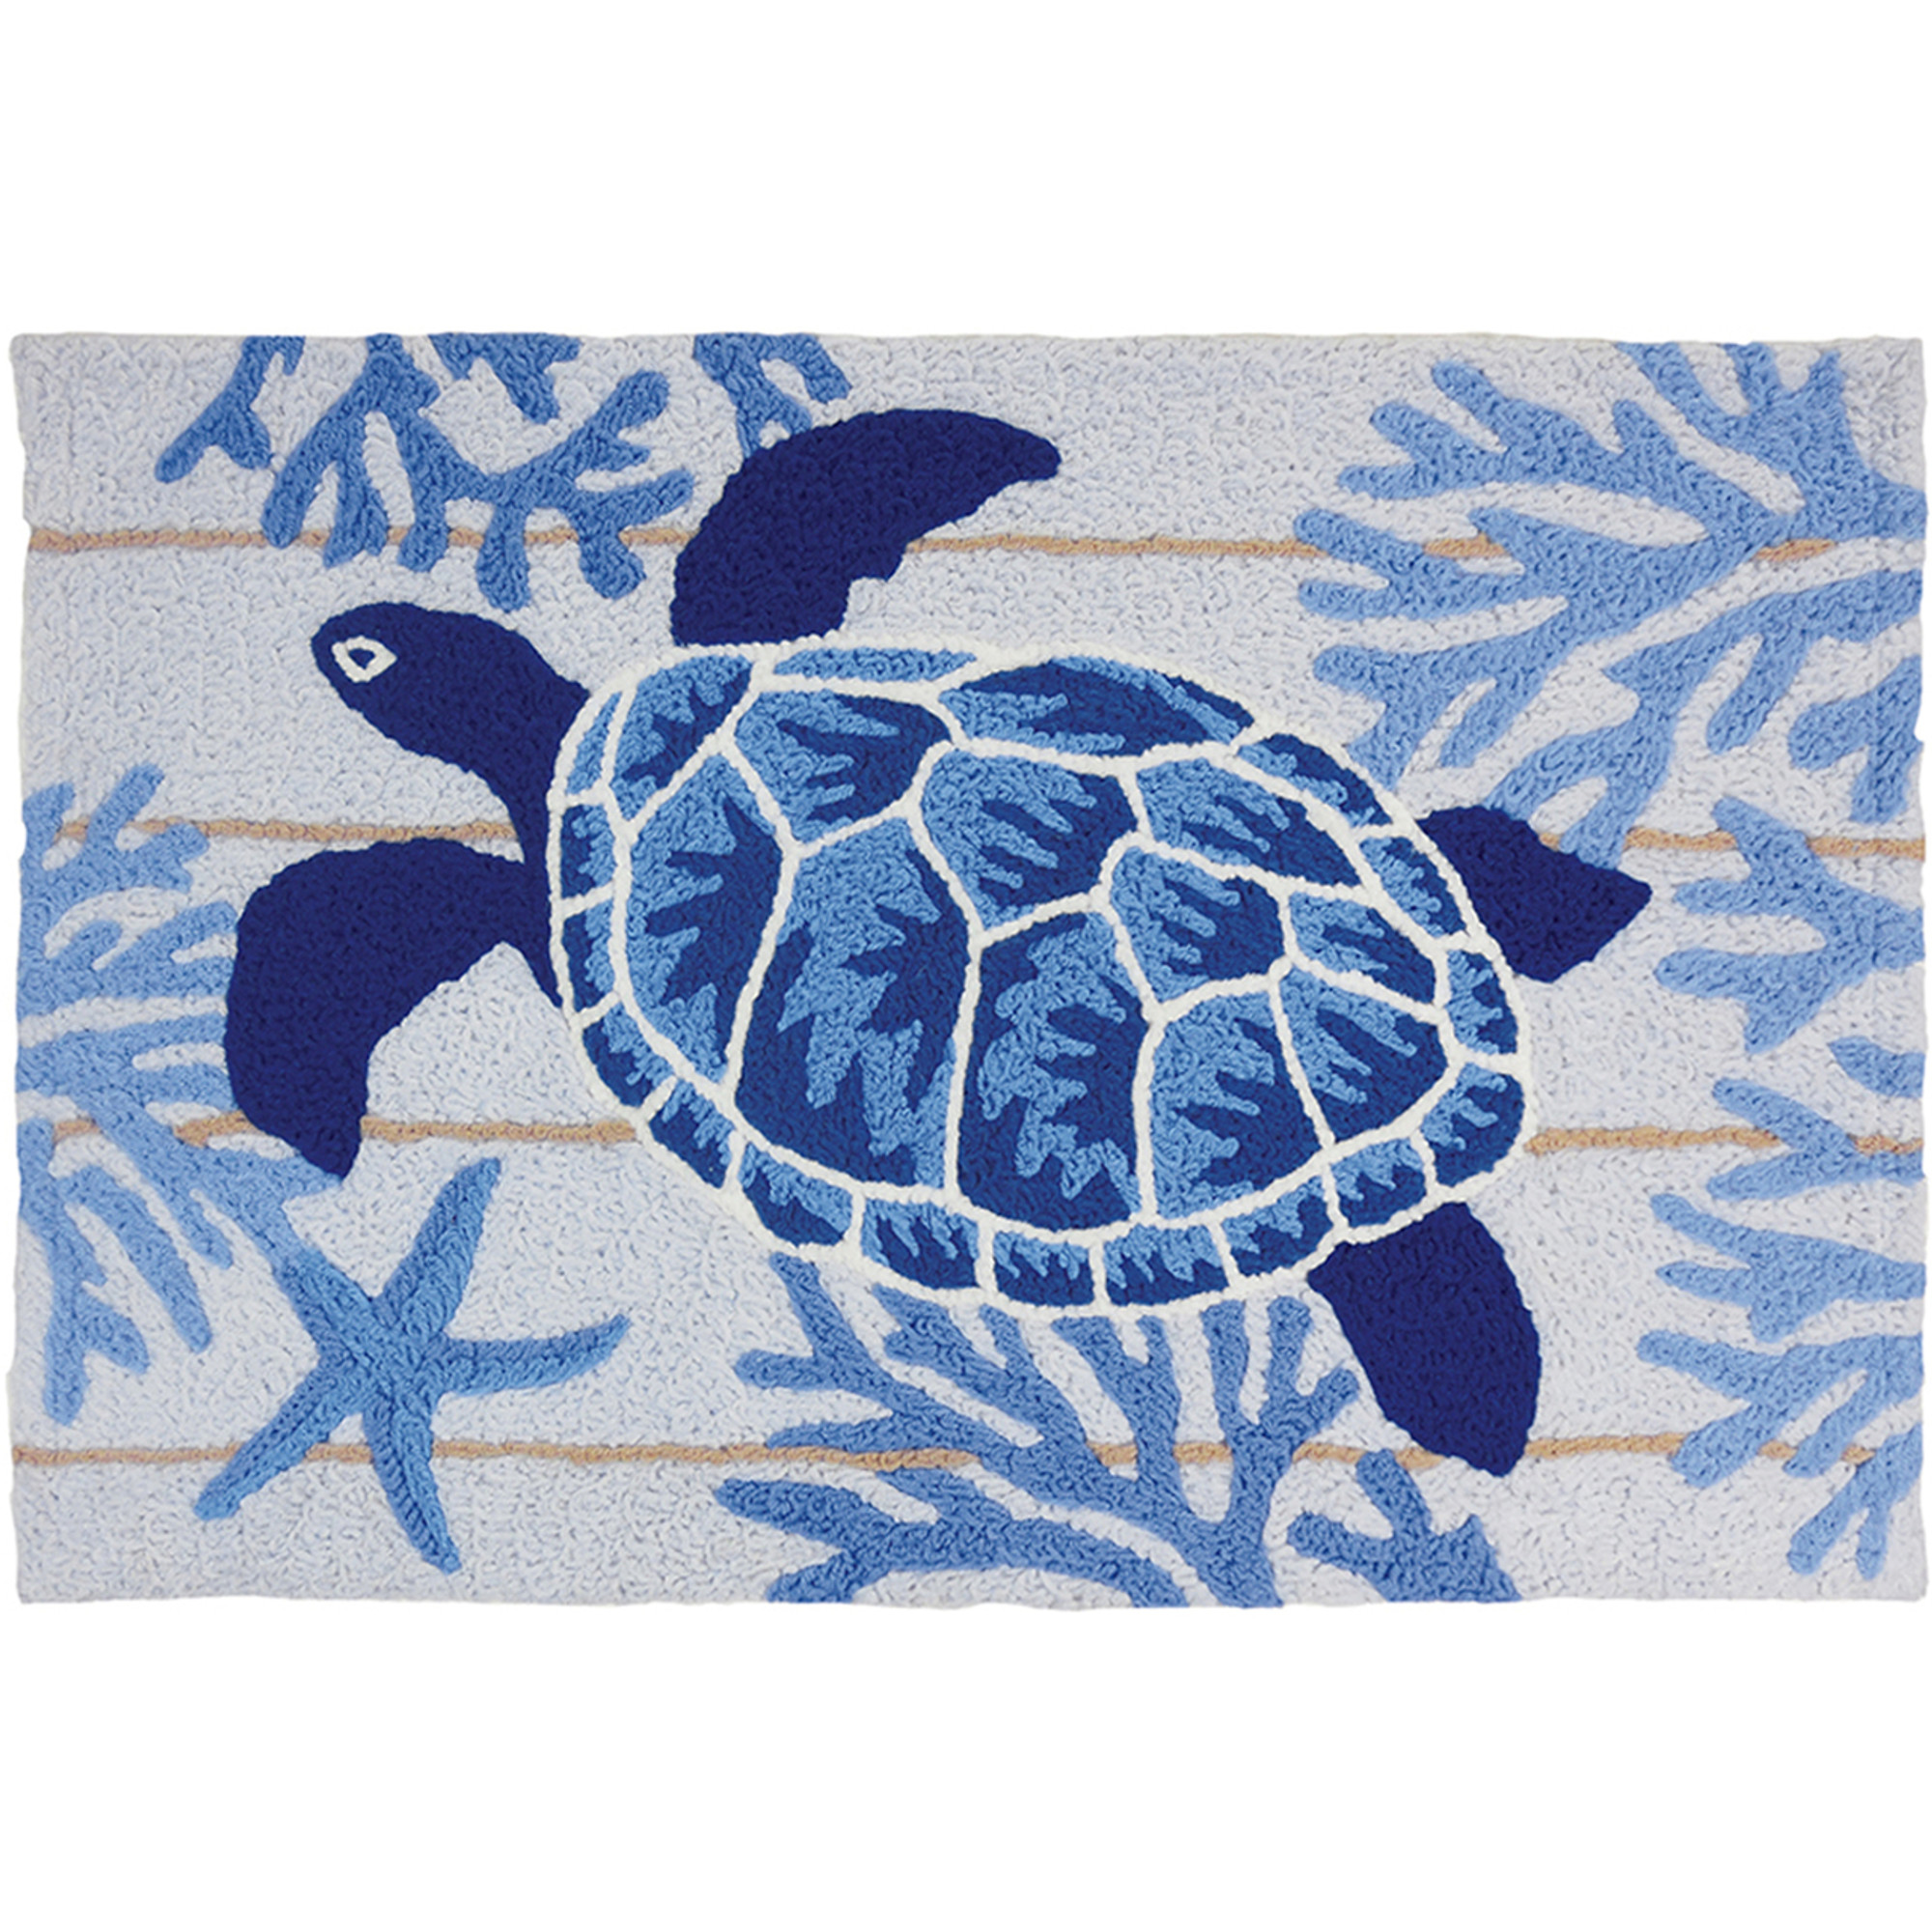 Indigo Sea Turtle